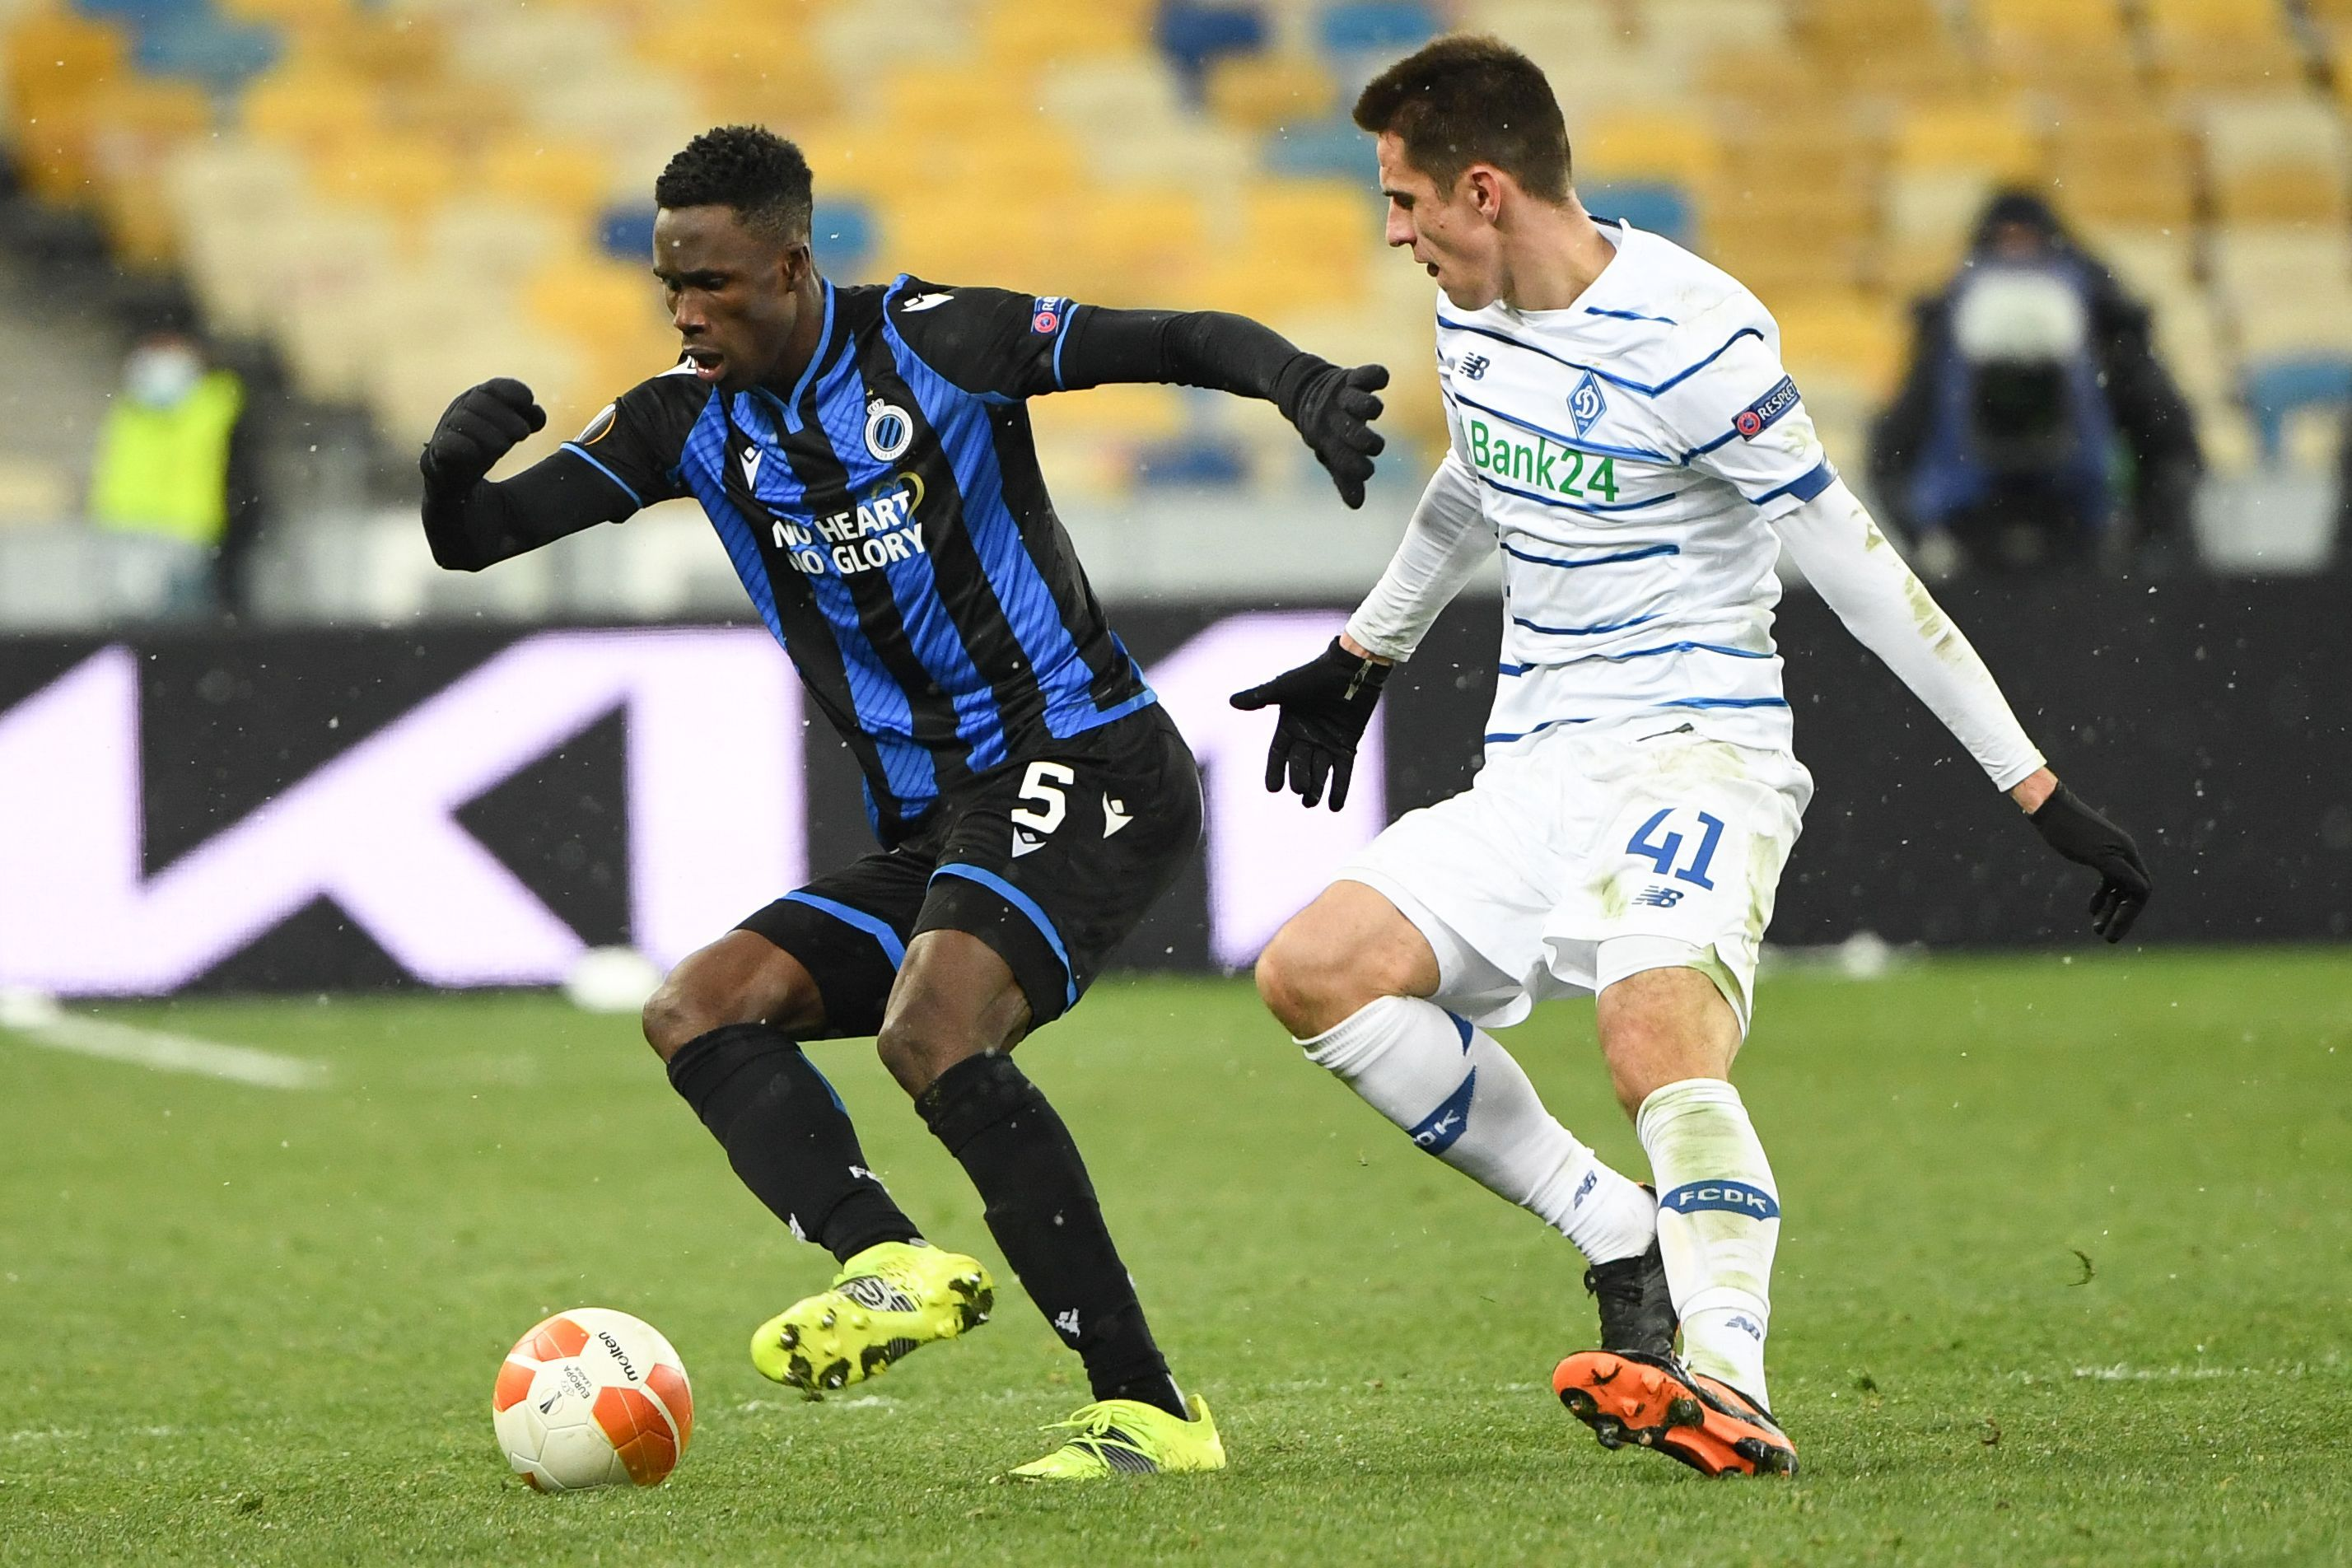 Arsenal are chasing Club Brugge defender Odilon Kossounou